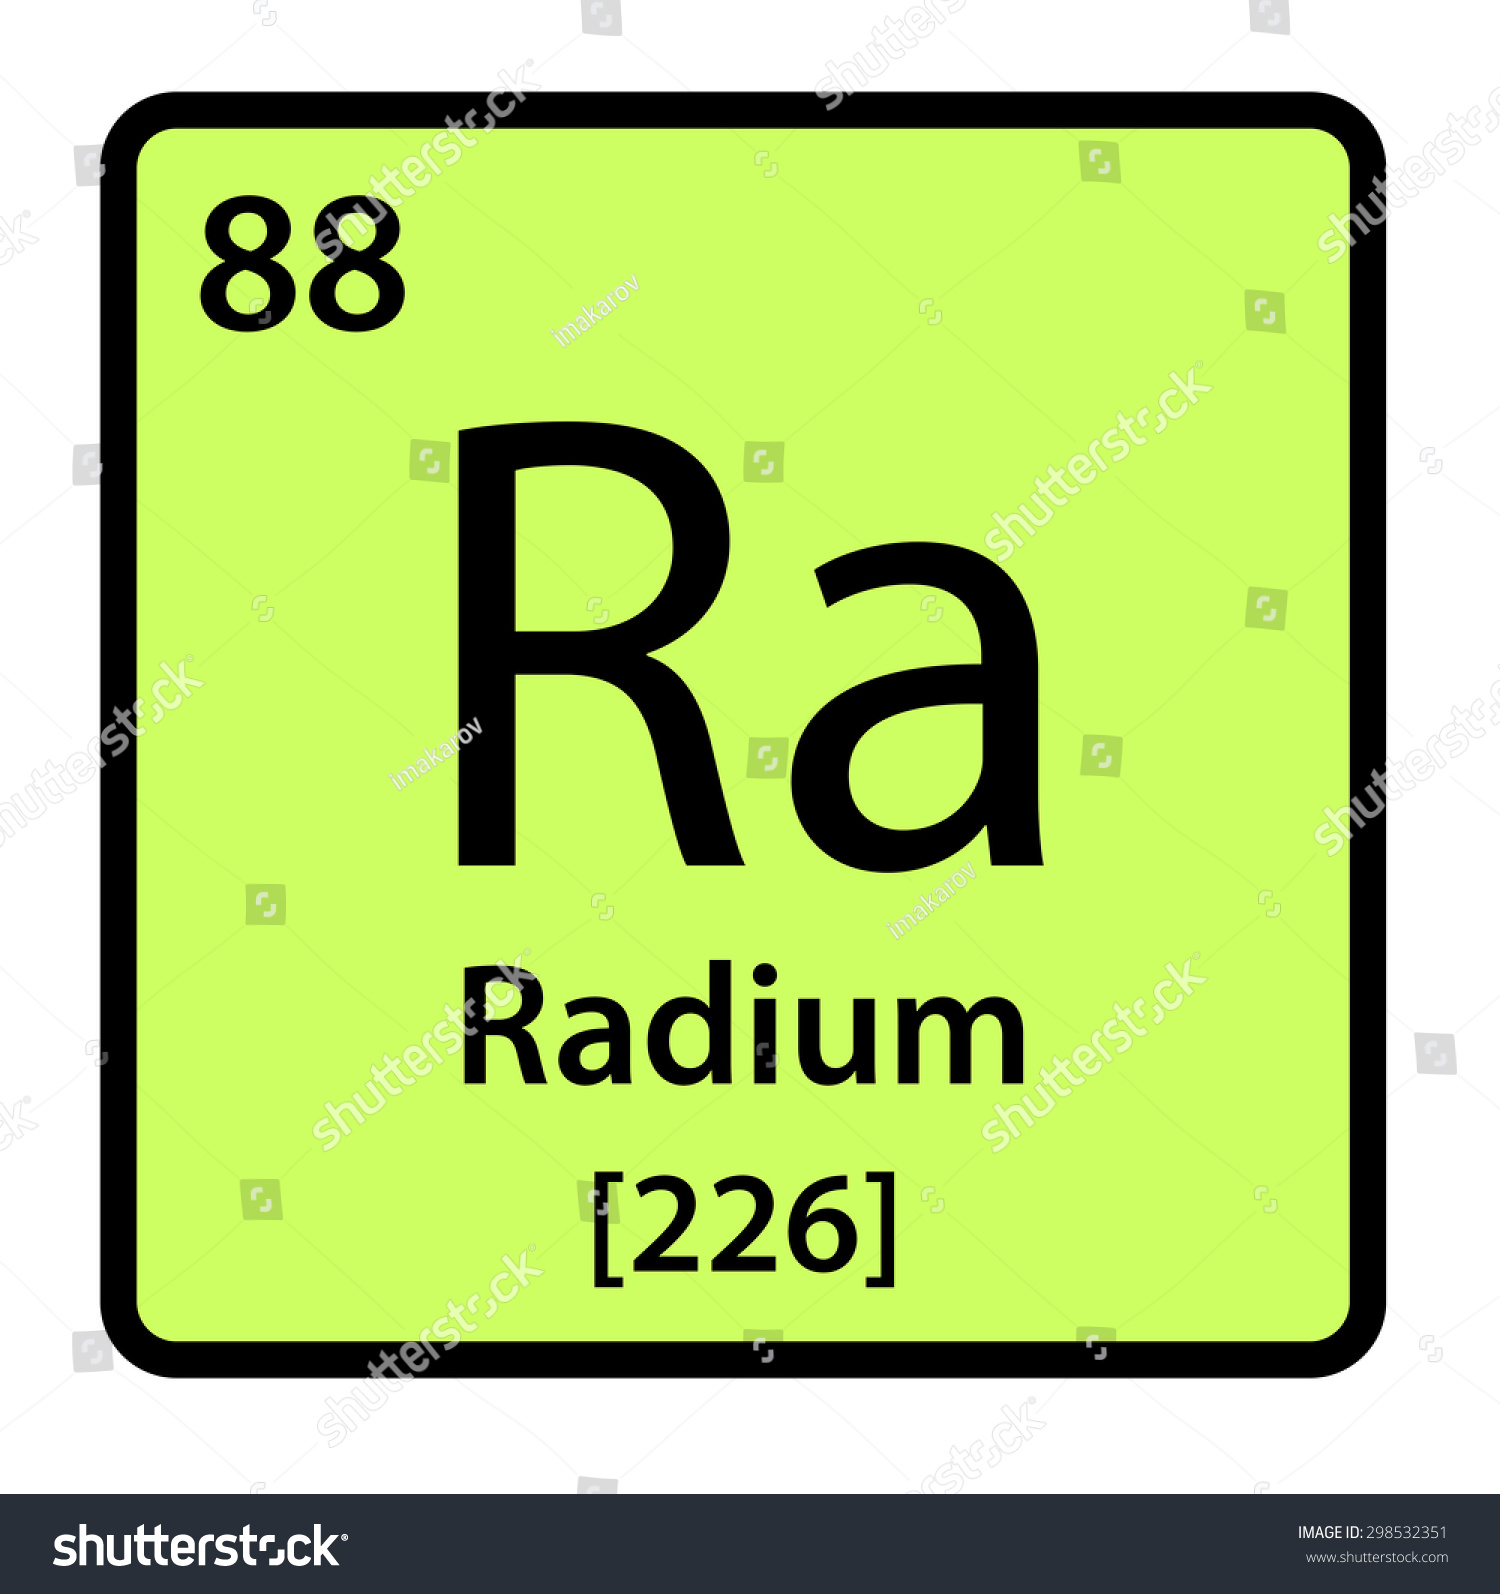 Element radium periodic table stock illustration 298532351 element radium of the periodic table gamestrikefo Images